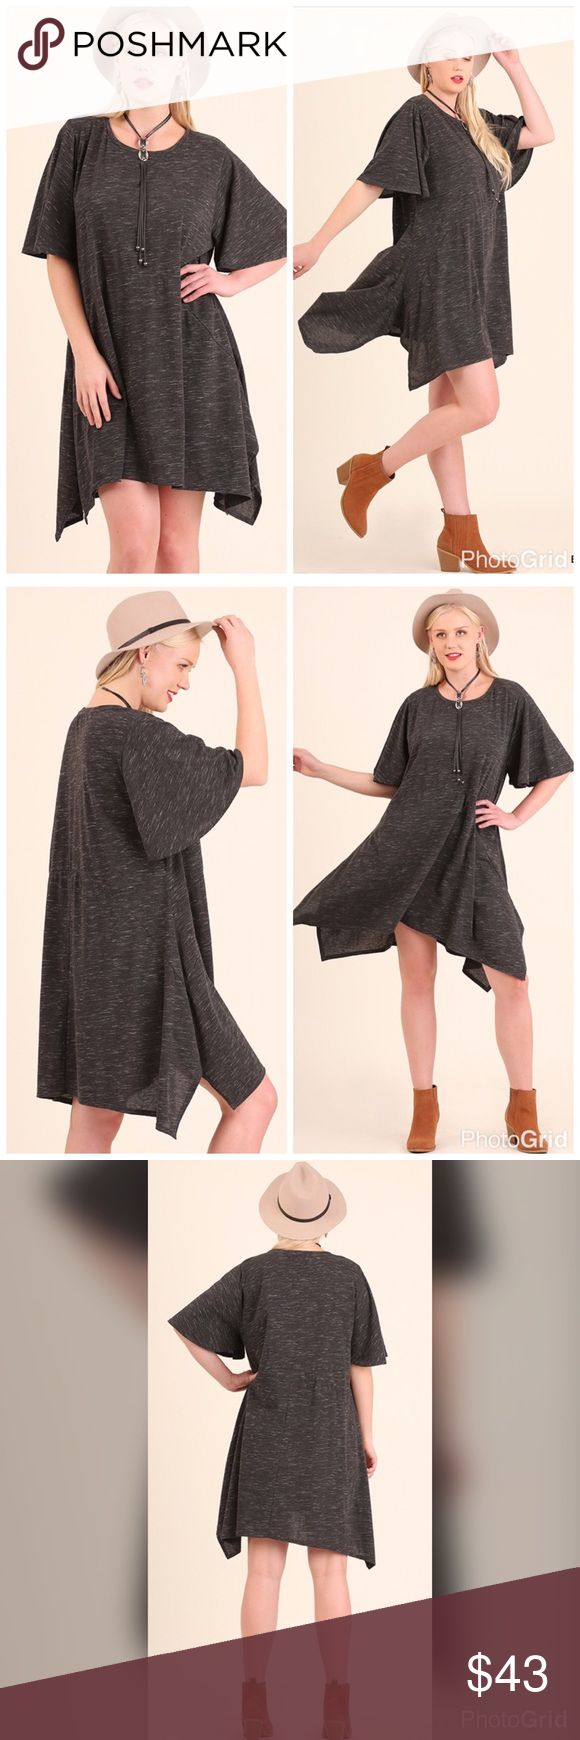 💖PLUS💖NEW💖The A Dress Short sleeve Asymmetric Dress with Flutter sleeves. 55% Cotton 45% Polyester. Dresses